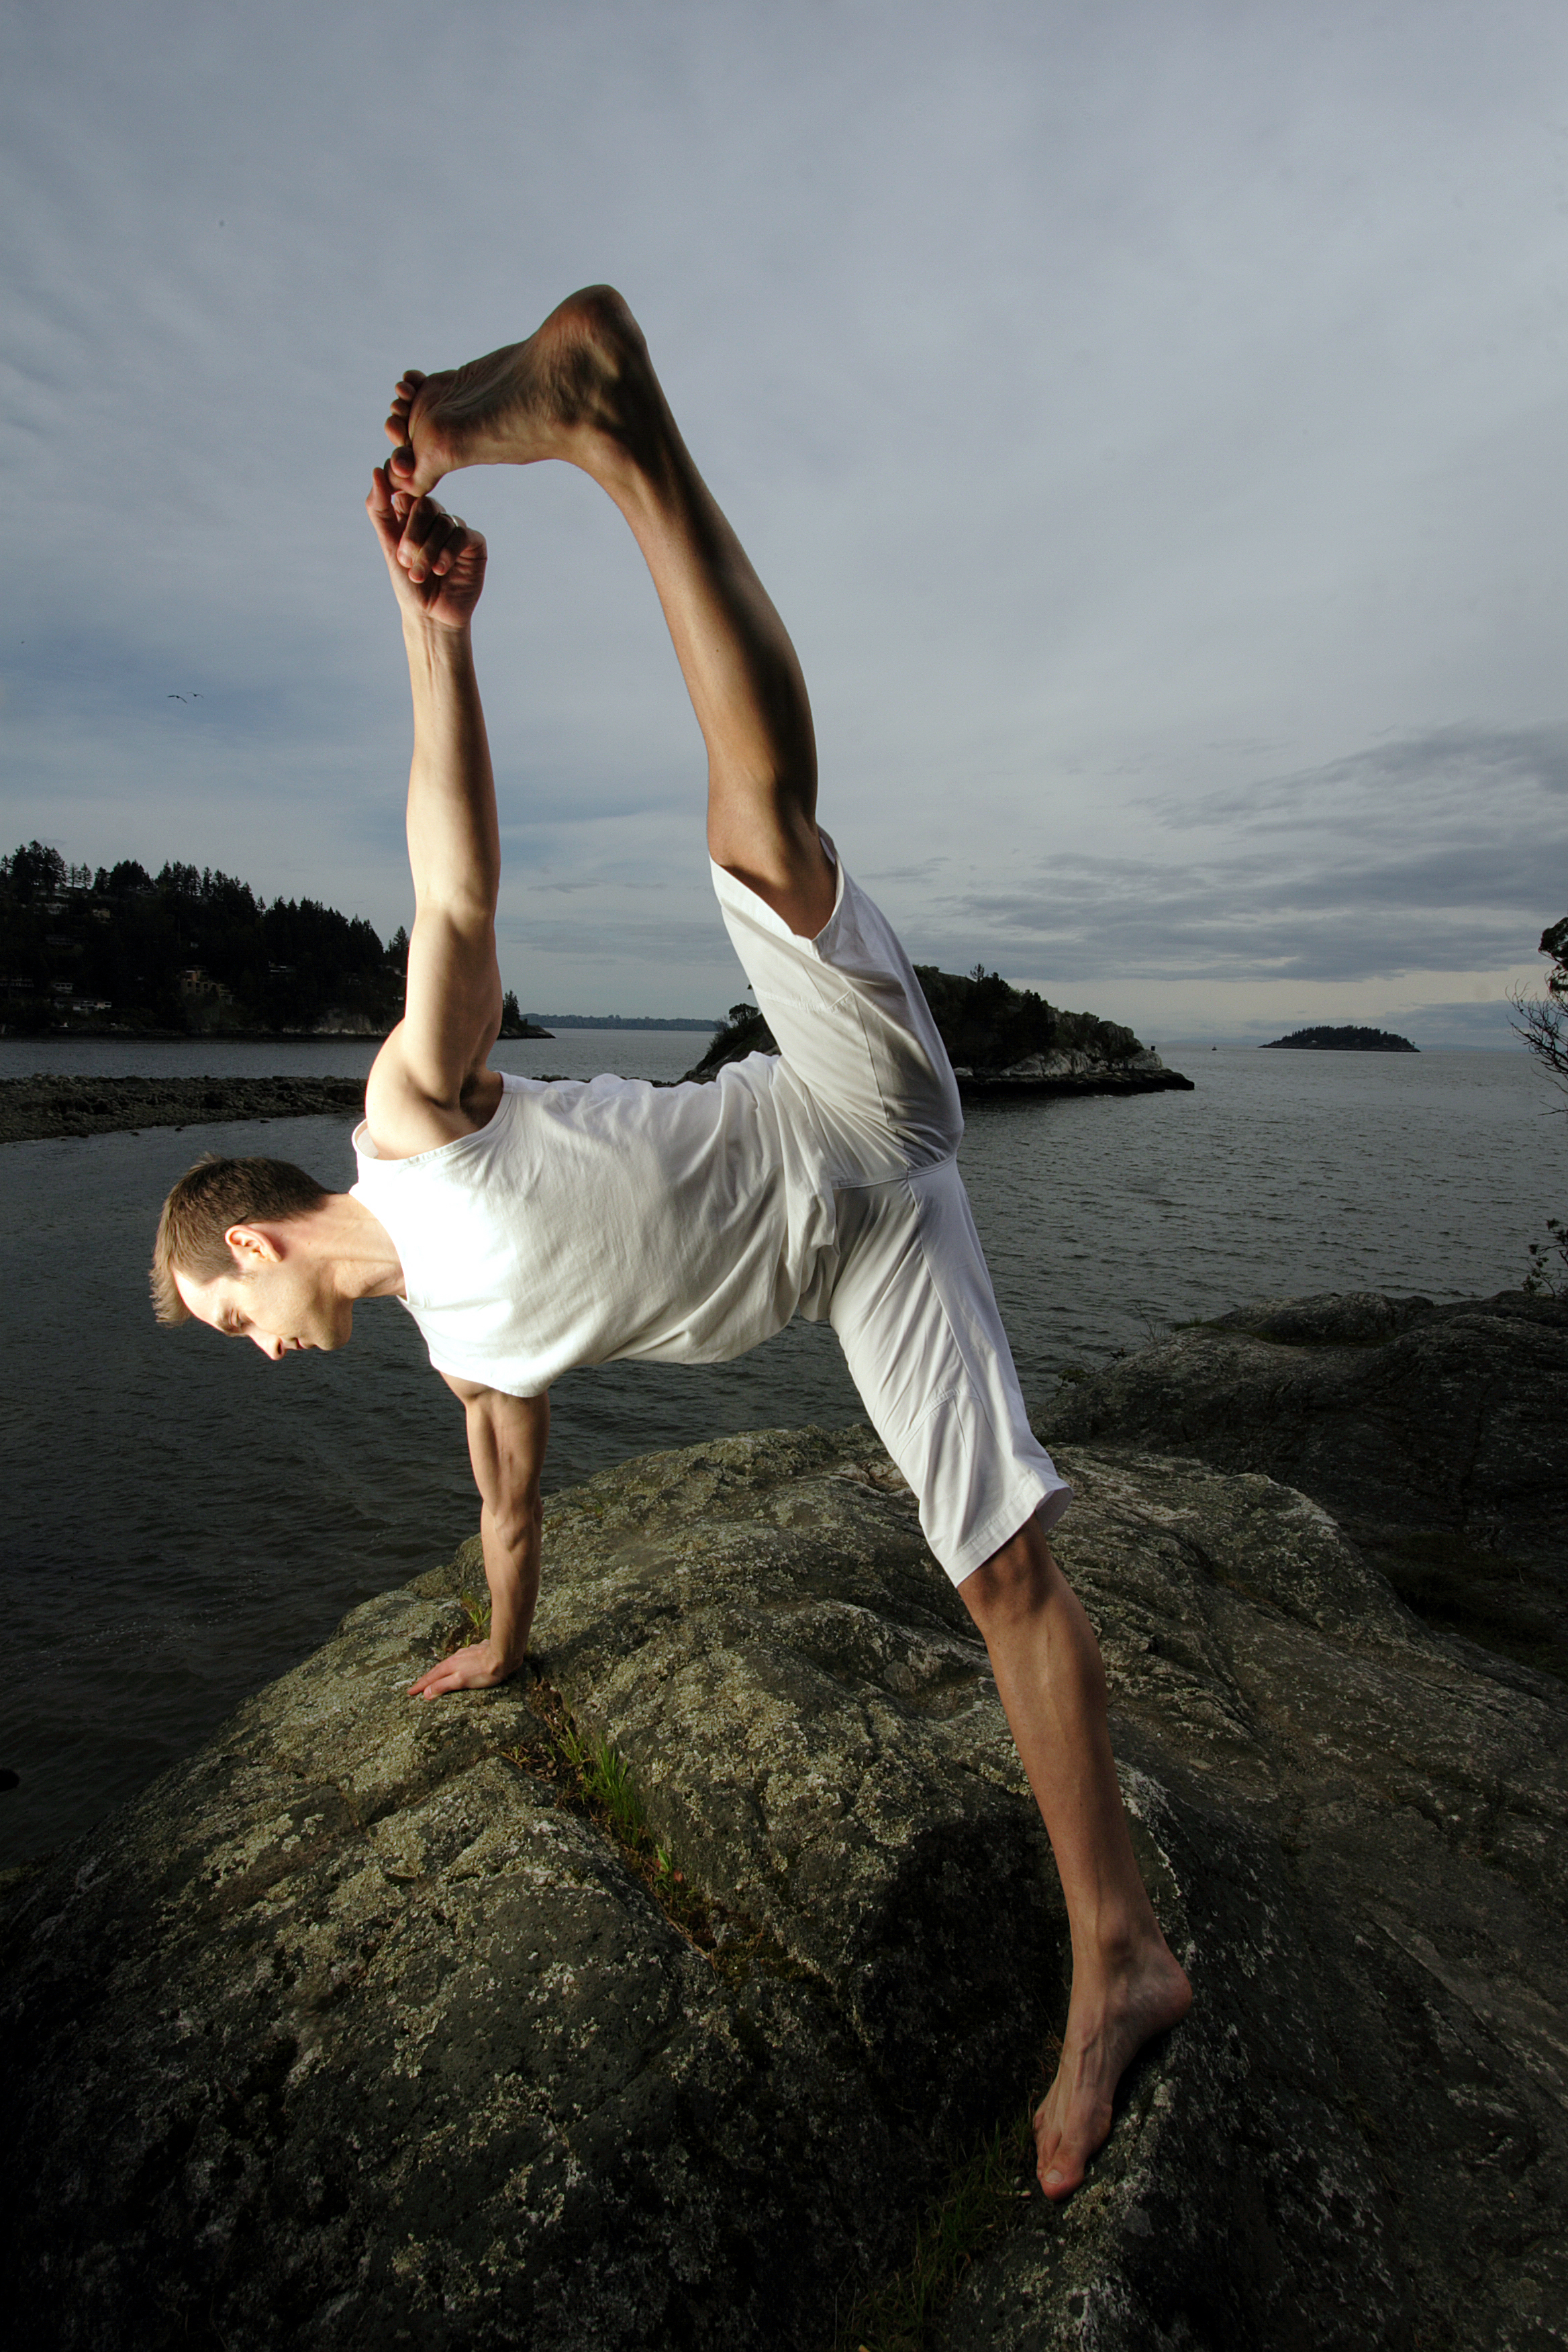 Kreg isa certified Hatha Yoga Teacher, international presenter and kinesiologist (exercise science). All of his classes integrate a purposeful, meditative quality to allow for an experience of connection and reflection while the body explores expansion and renewal.